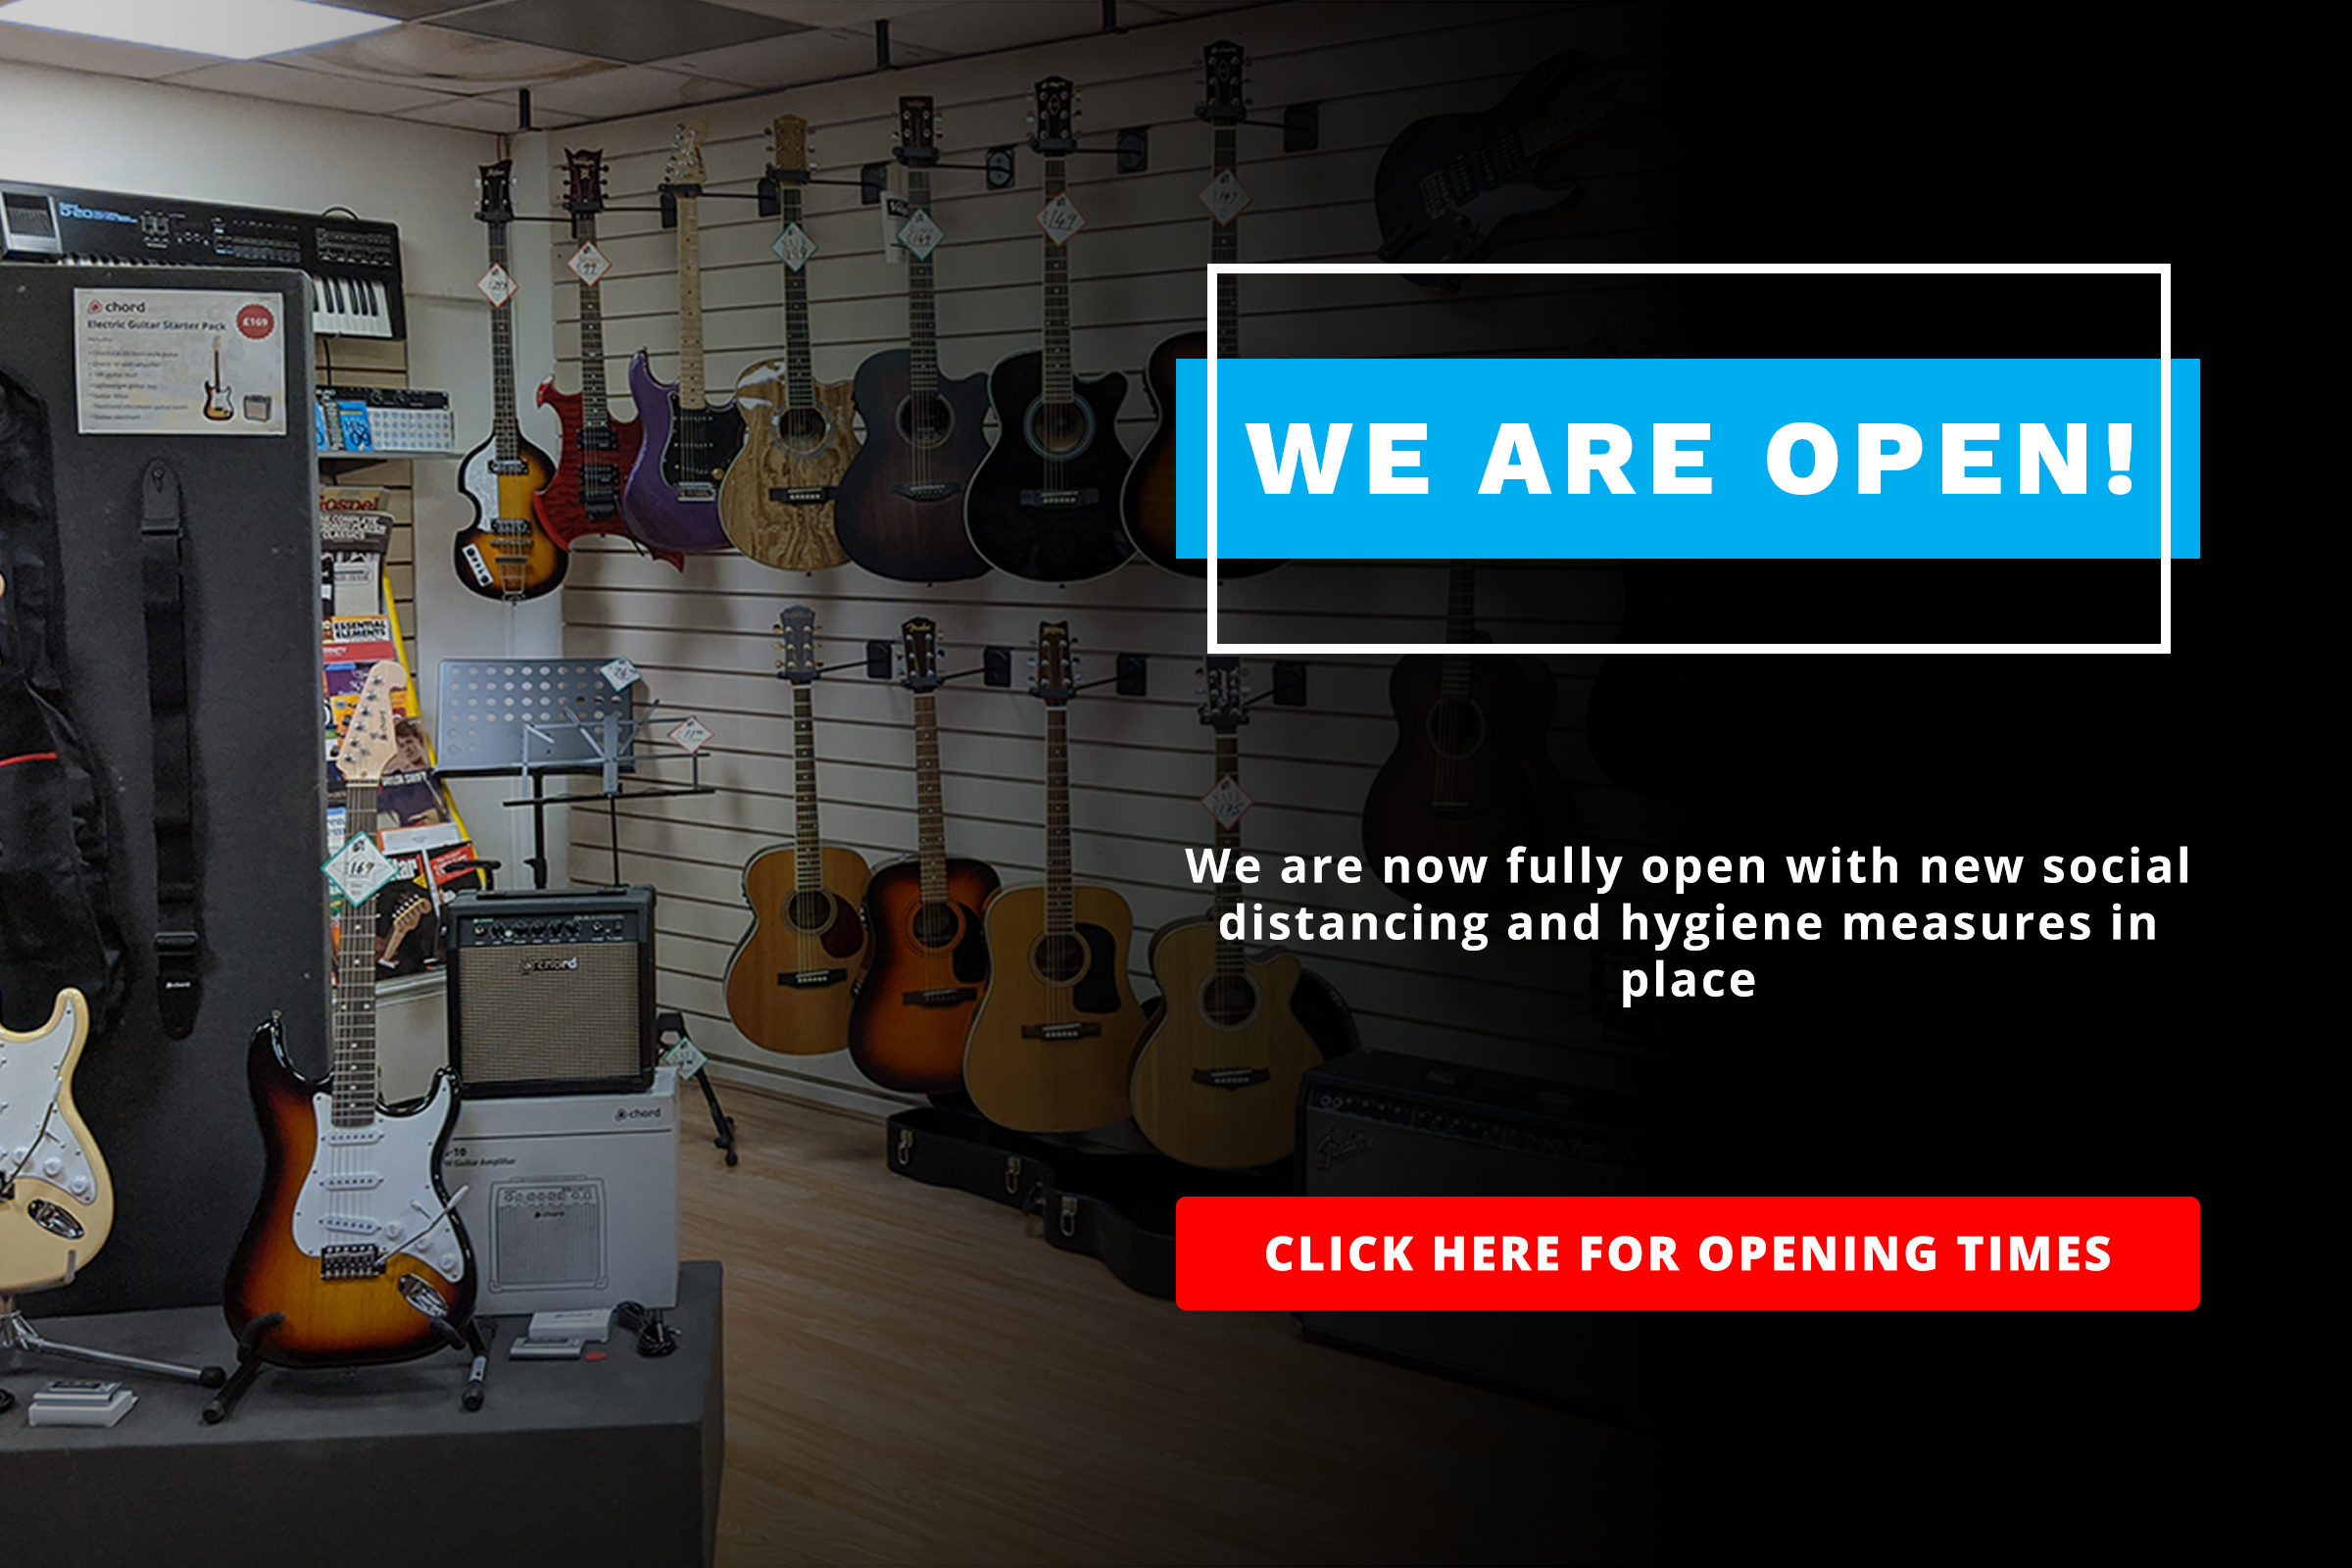 We are open! Click here for opening times.